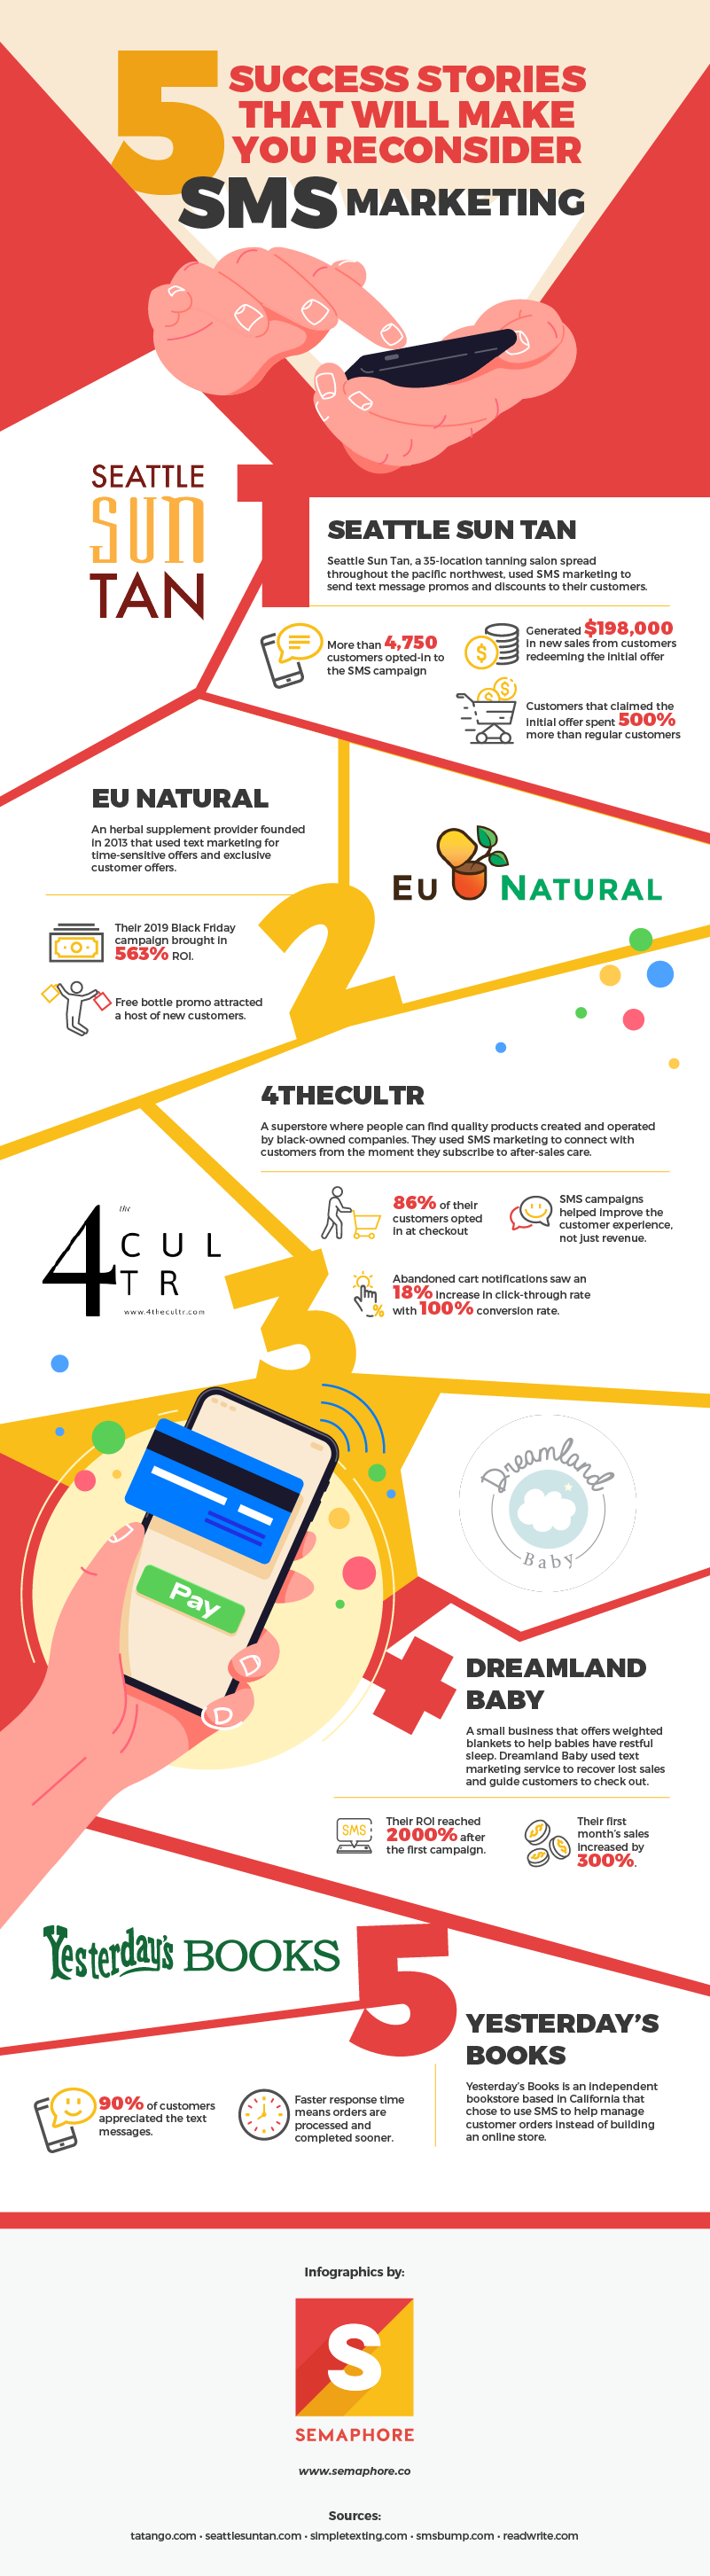 5 Success Stories That Will Make You Reconsider SMS Marketing-Infographic